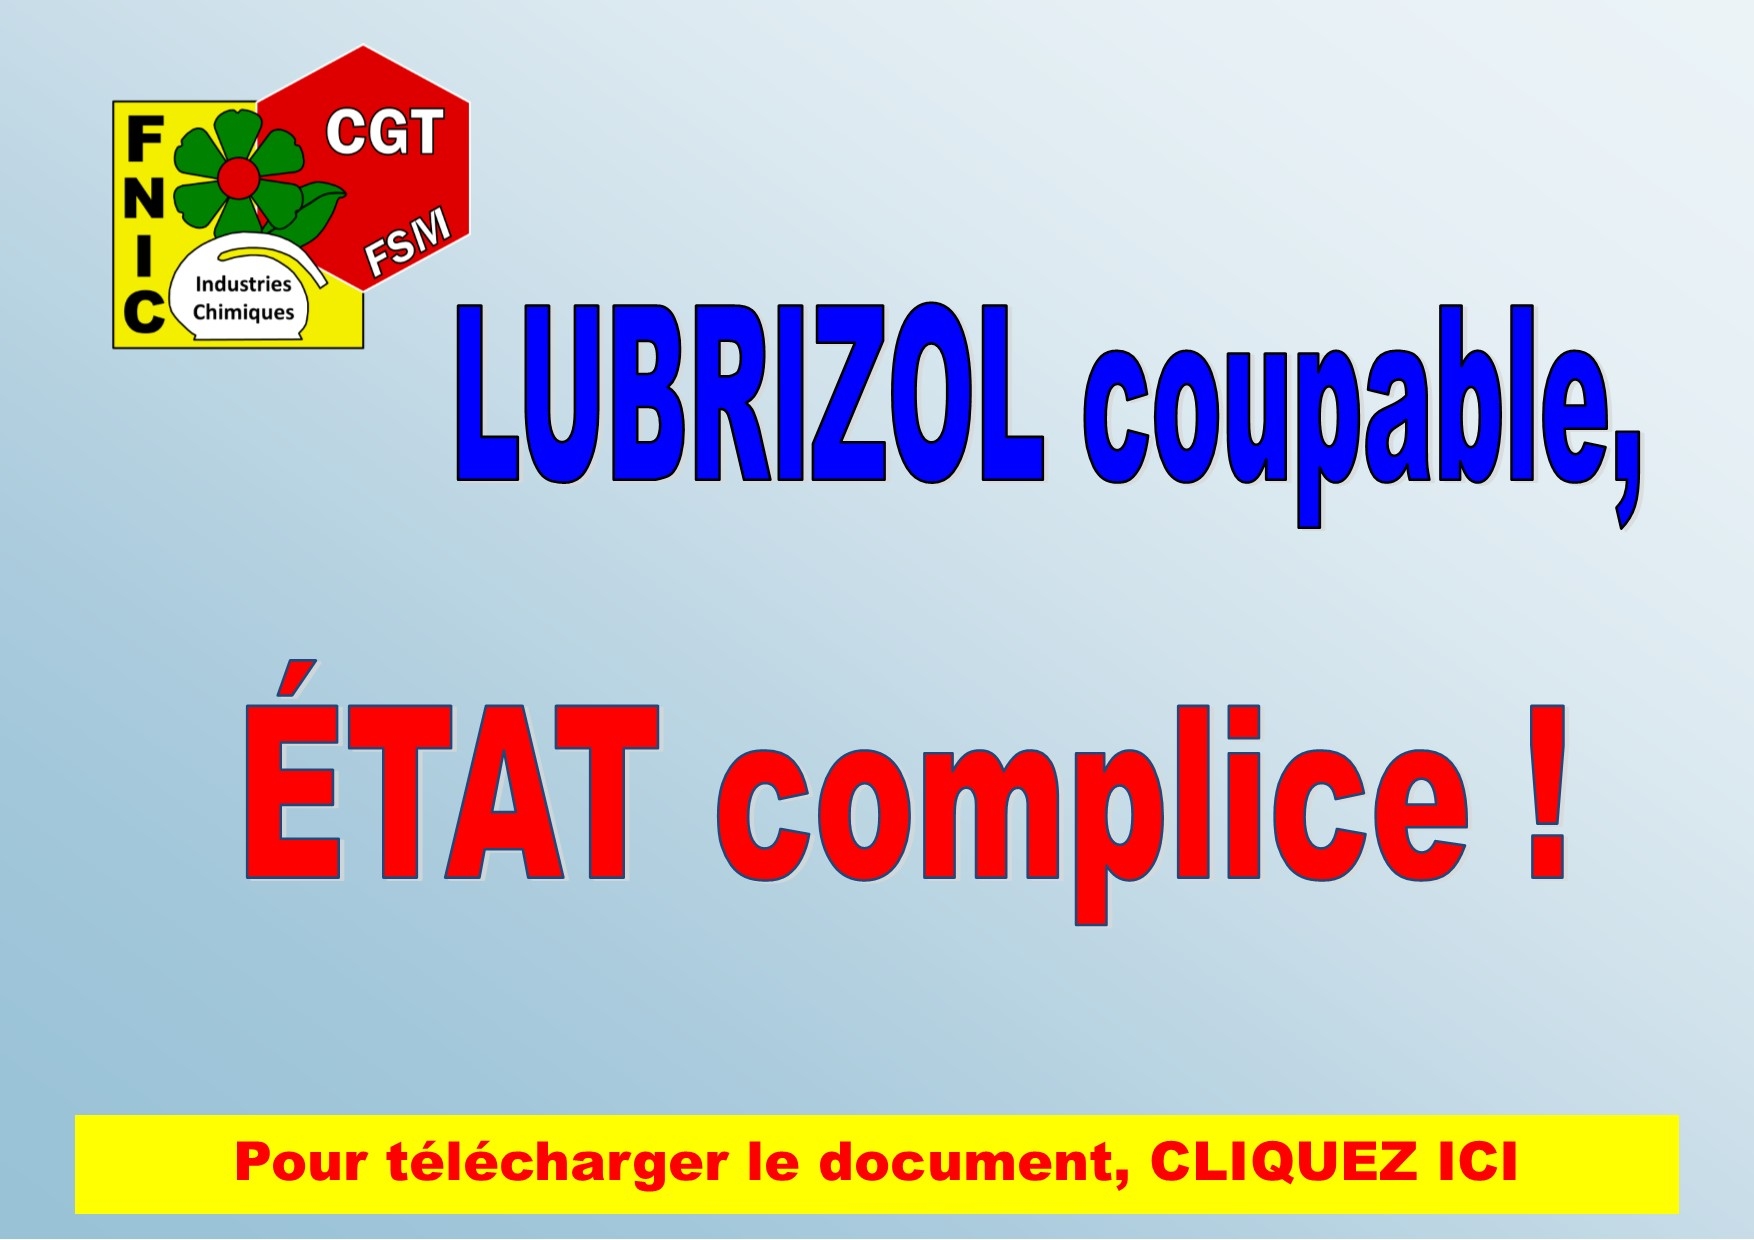 LUBRIZOL COUPABLE, ETAT COMPLICE !